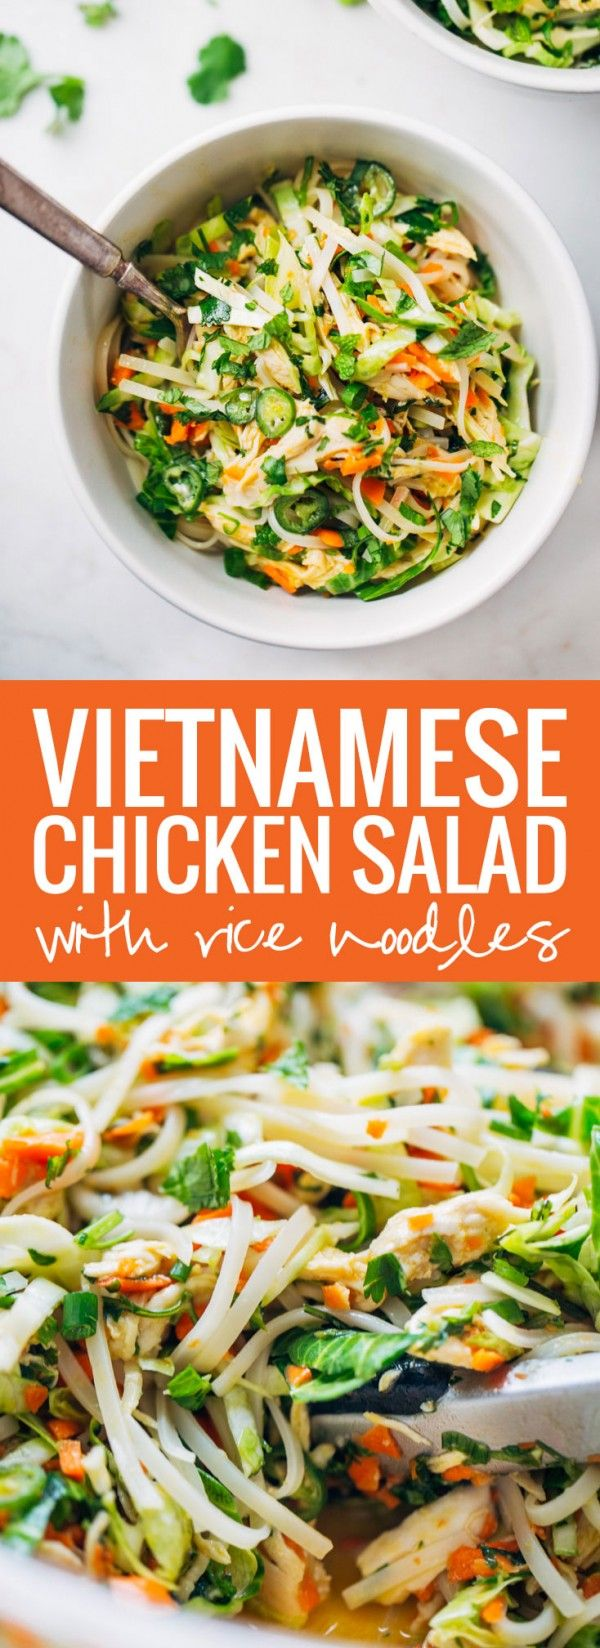 Vietnamese Chicken Salad with Rice Noodles made with chicken, cabbage ...